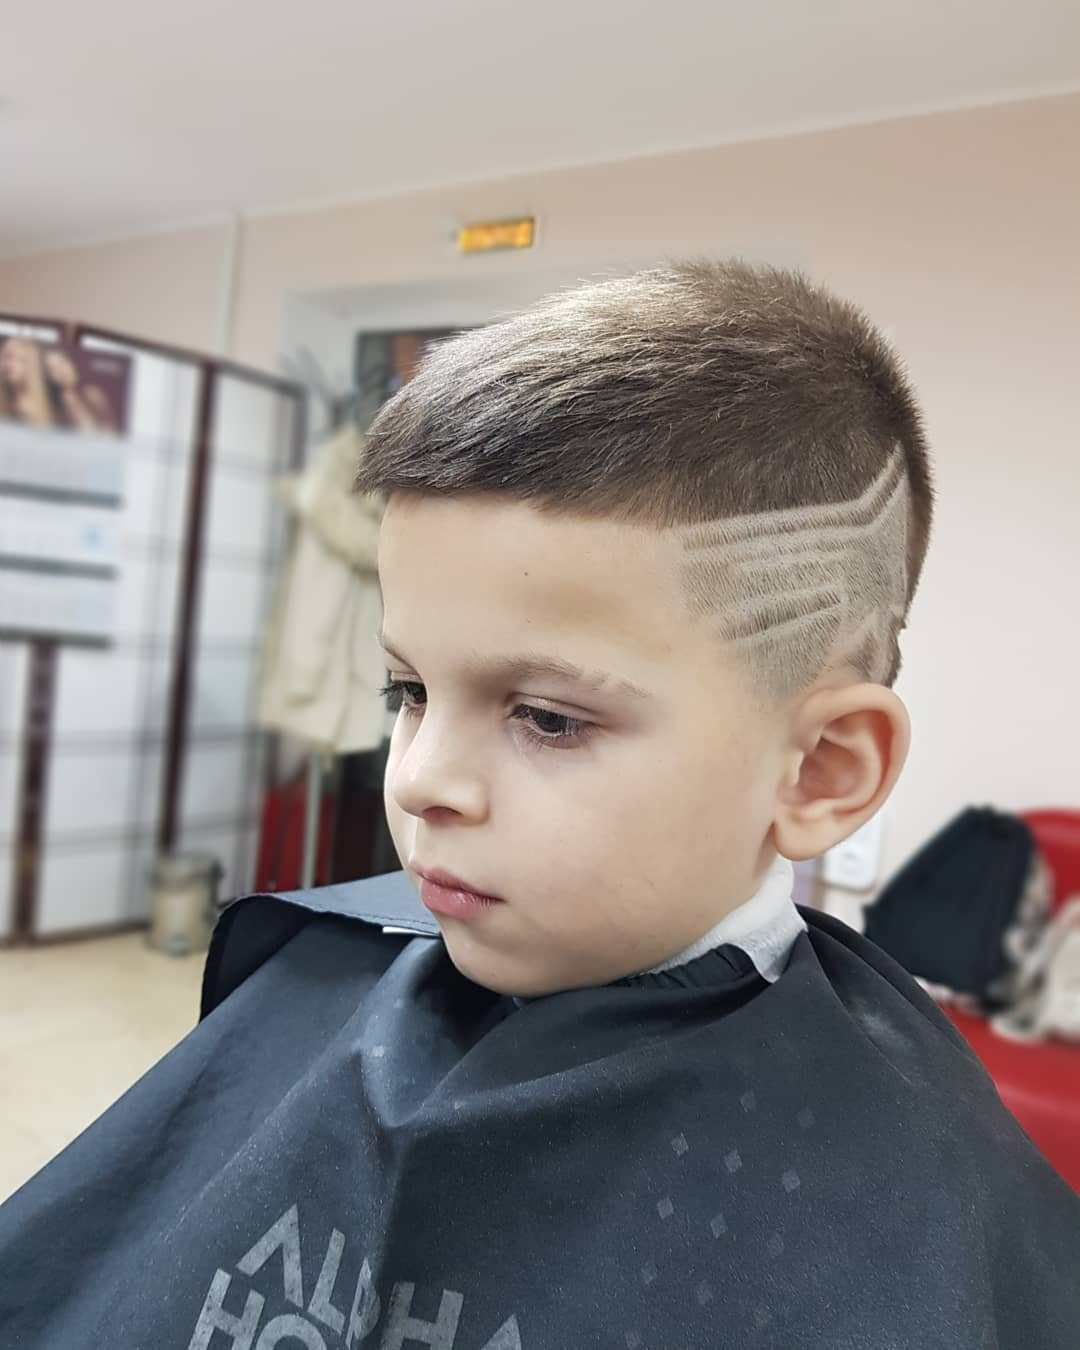 New Cool Haircuts For Boys 2019 Top Trendy Guy Haircuts 2019 Ideas With Pictures